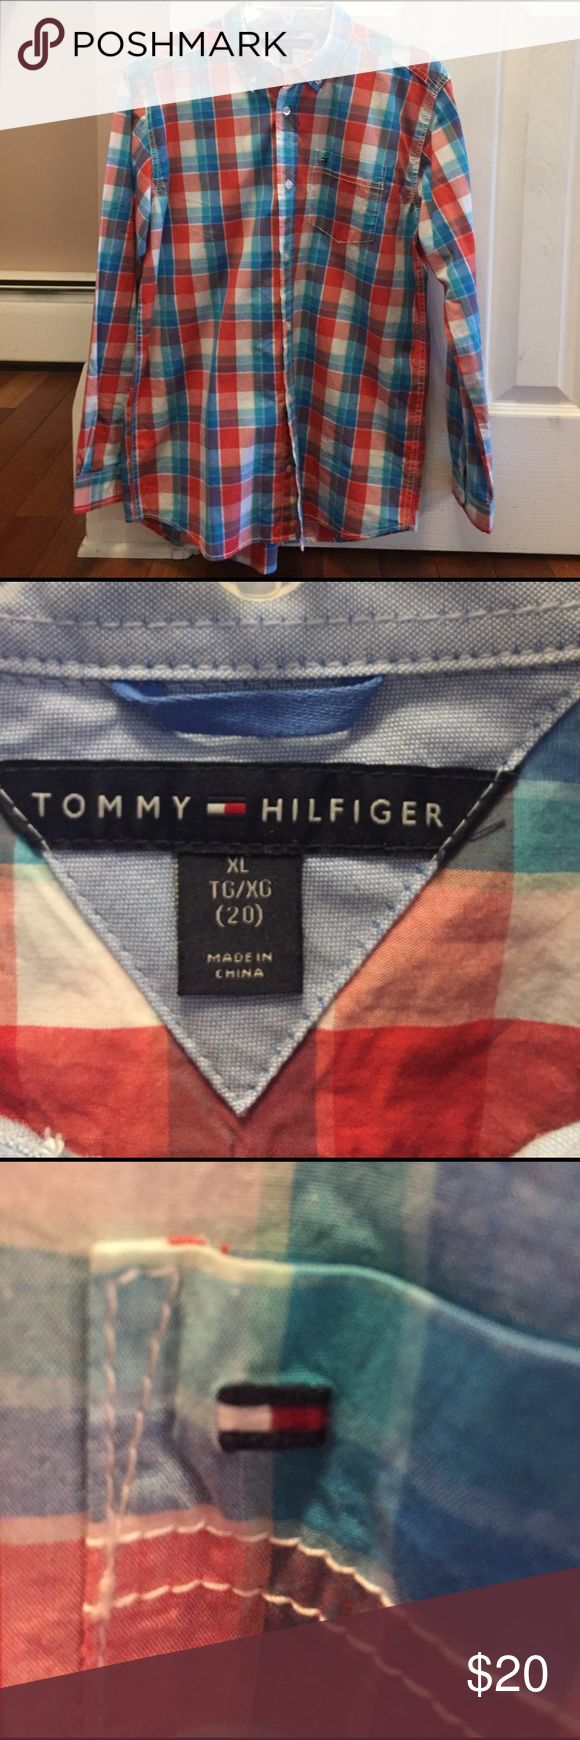 Tommy Hilfiger dress shirt! Boys XL (20) Tommy Hilfiger button down, very good condition, worn once. Easter colors!!🐣🐣 Tommy Hilfiger Shirts & Tops Button Down Shirts